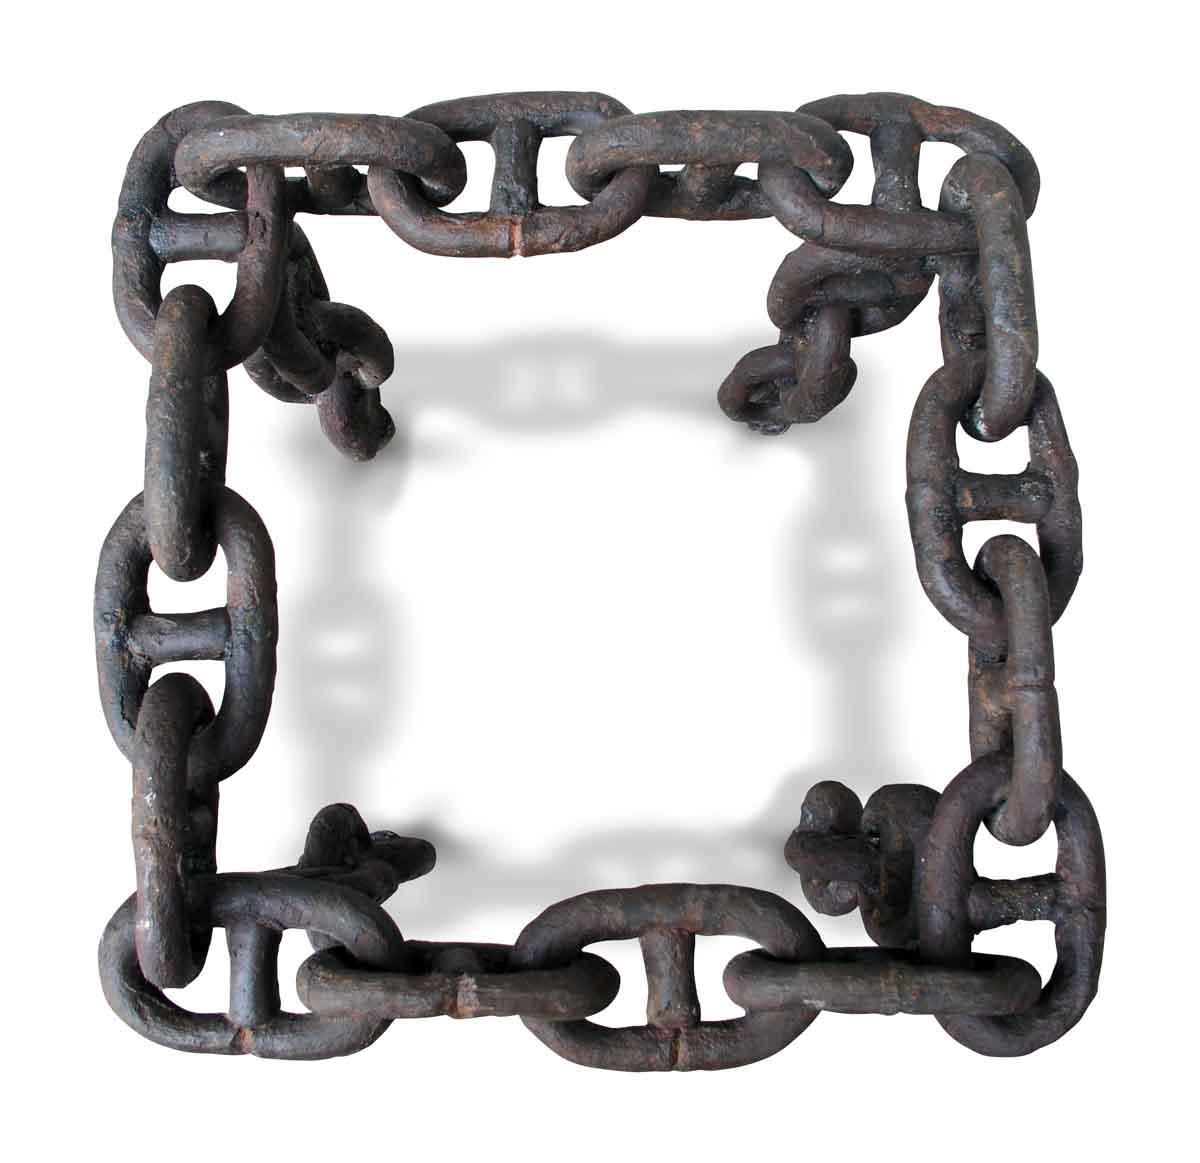 Beau Vintage Wrought Iron Chain Link Table Base   Image 4 Of 7